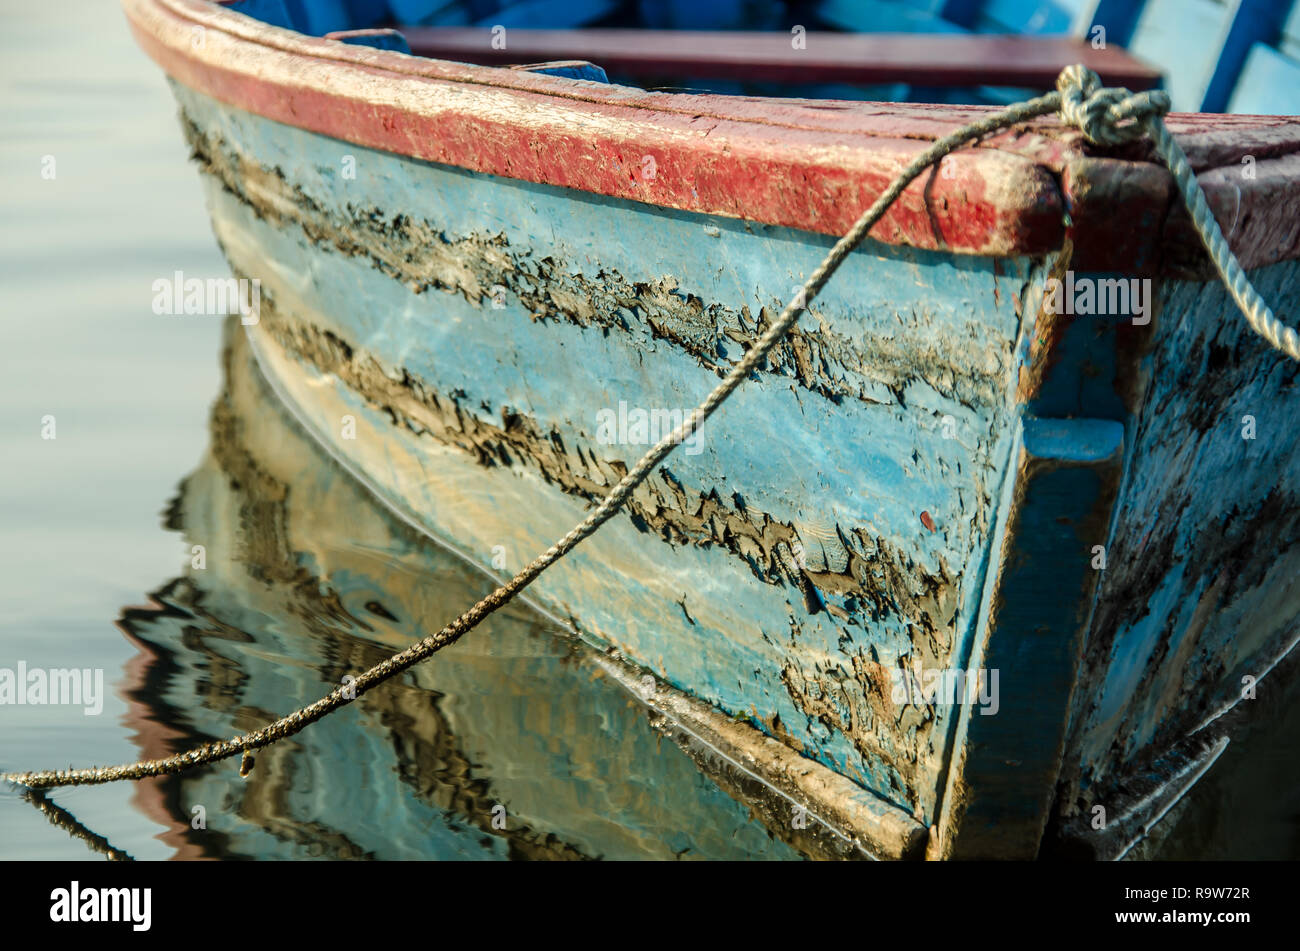 The fishing boats used on the Pokhara lake in Nepal. - Stock Image